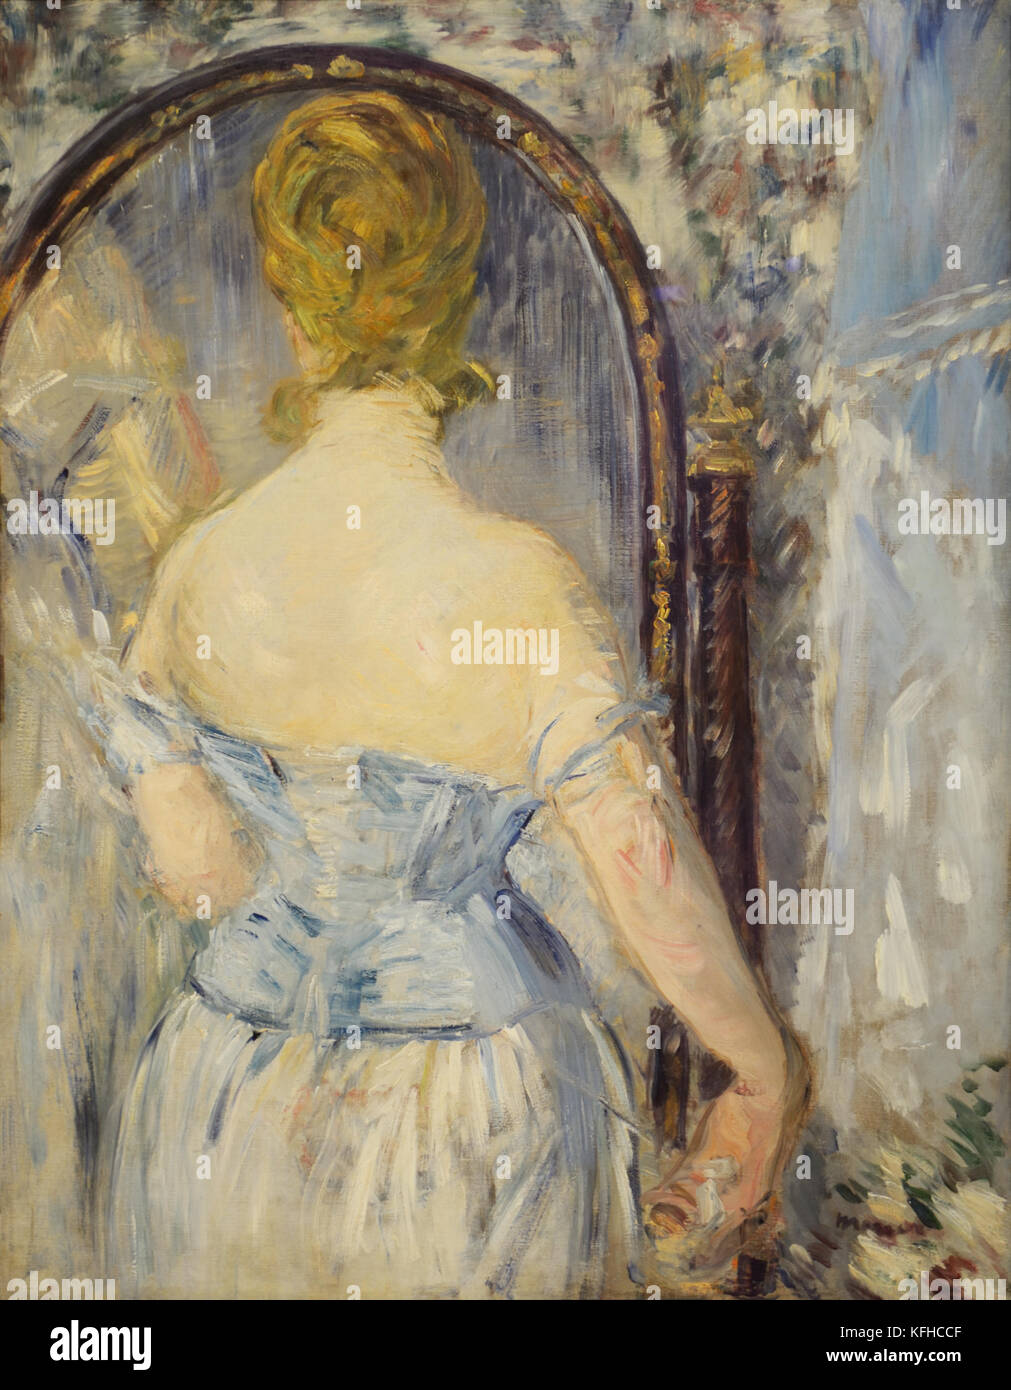 Before the Mirror, 1876, painting by Edouard Manet - Stock Image